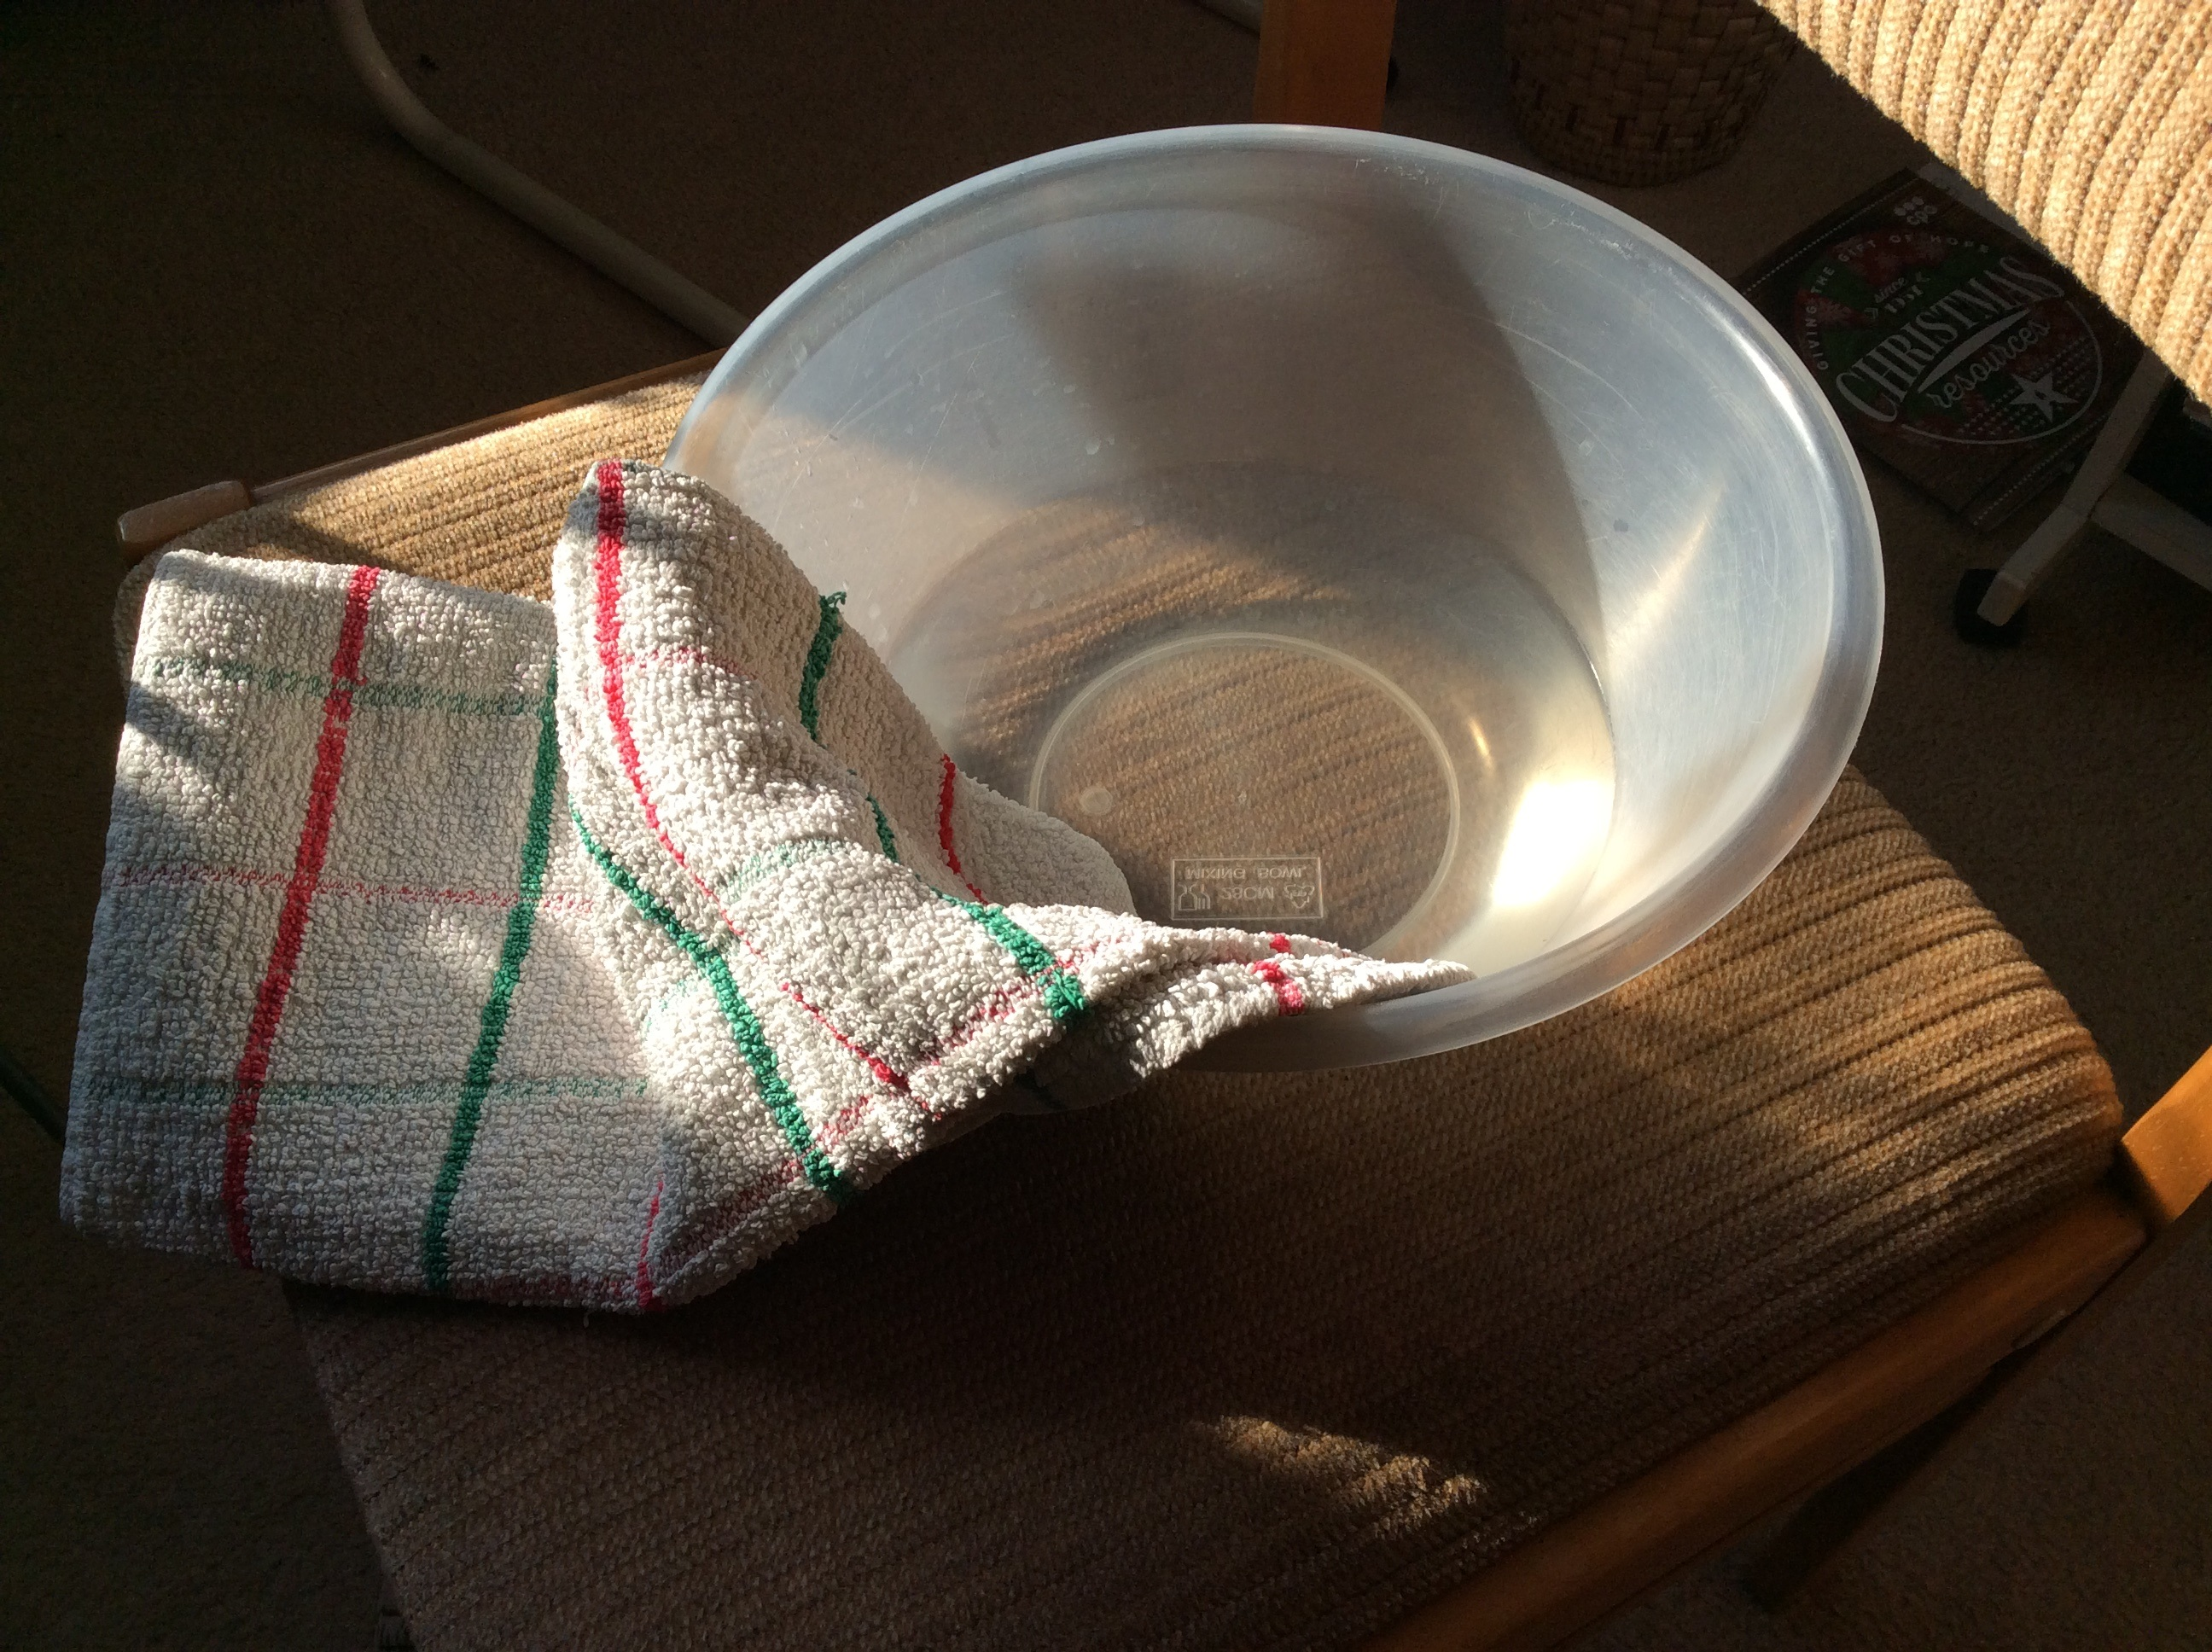 bowl and towel for washing